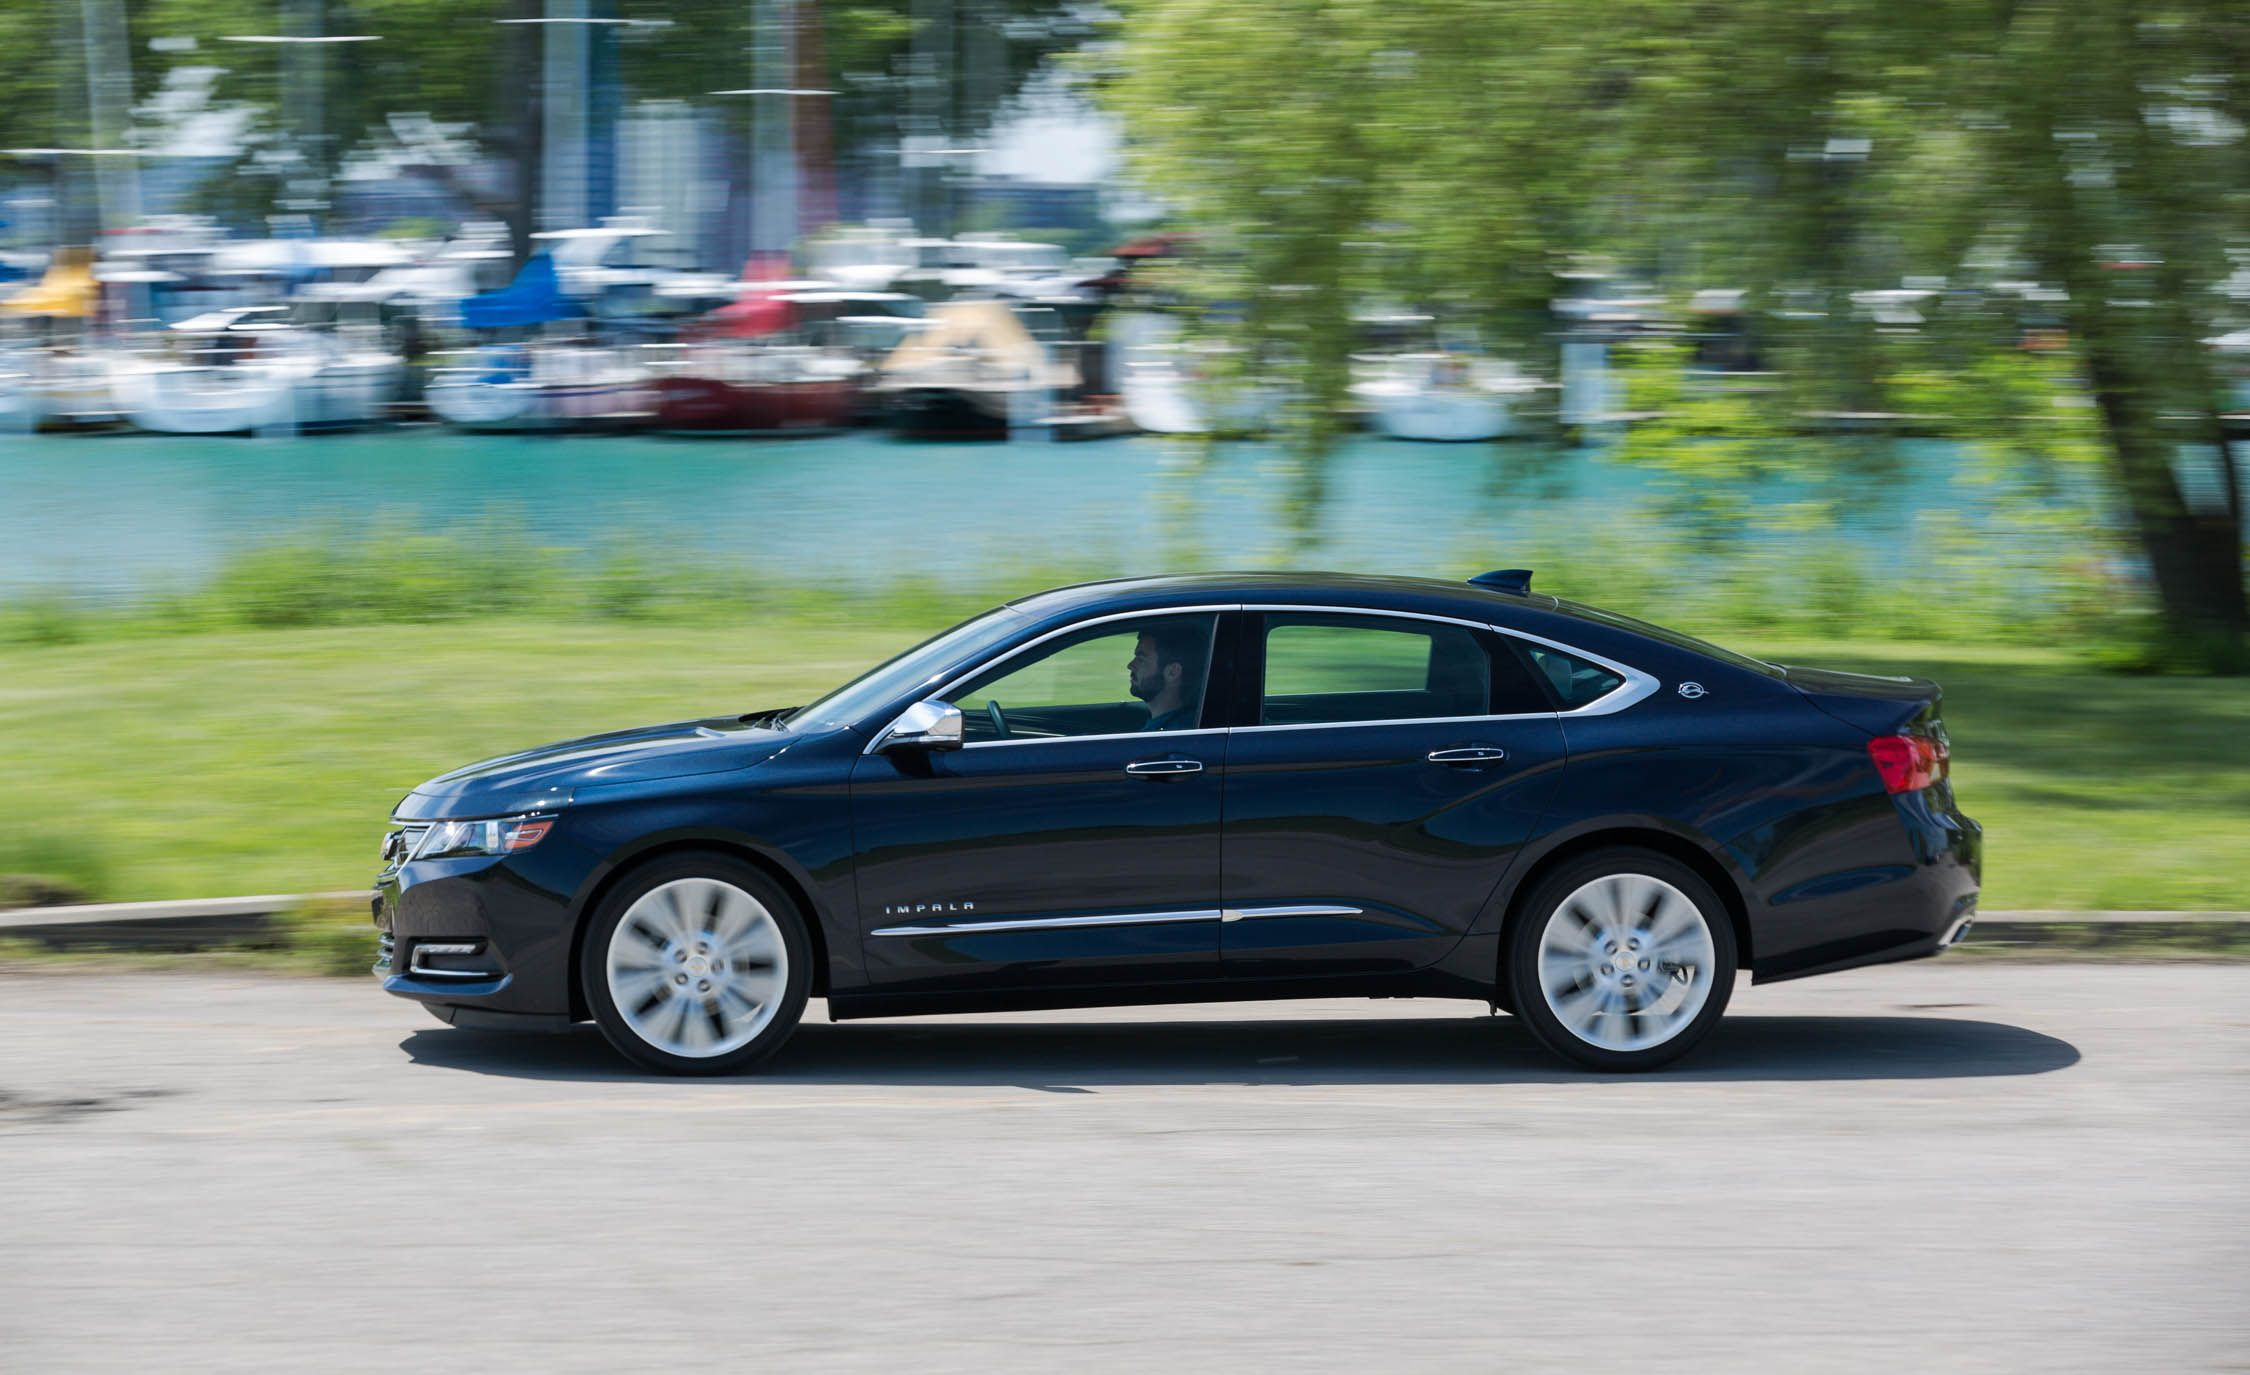 2018 chevrolet impala v 6 tested why does it remind us of 1961 1967 Chevy Impala 2018 chevrolet impala v 6 tested why does it remind us of 1961 review car and driver